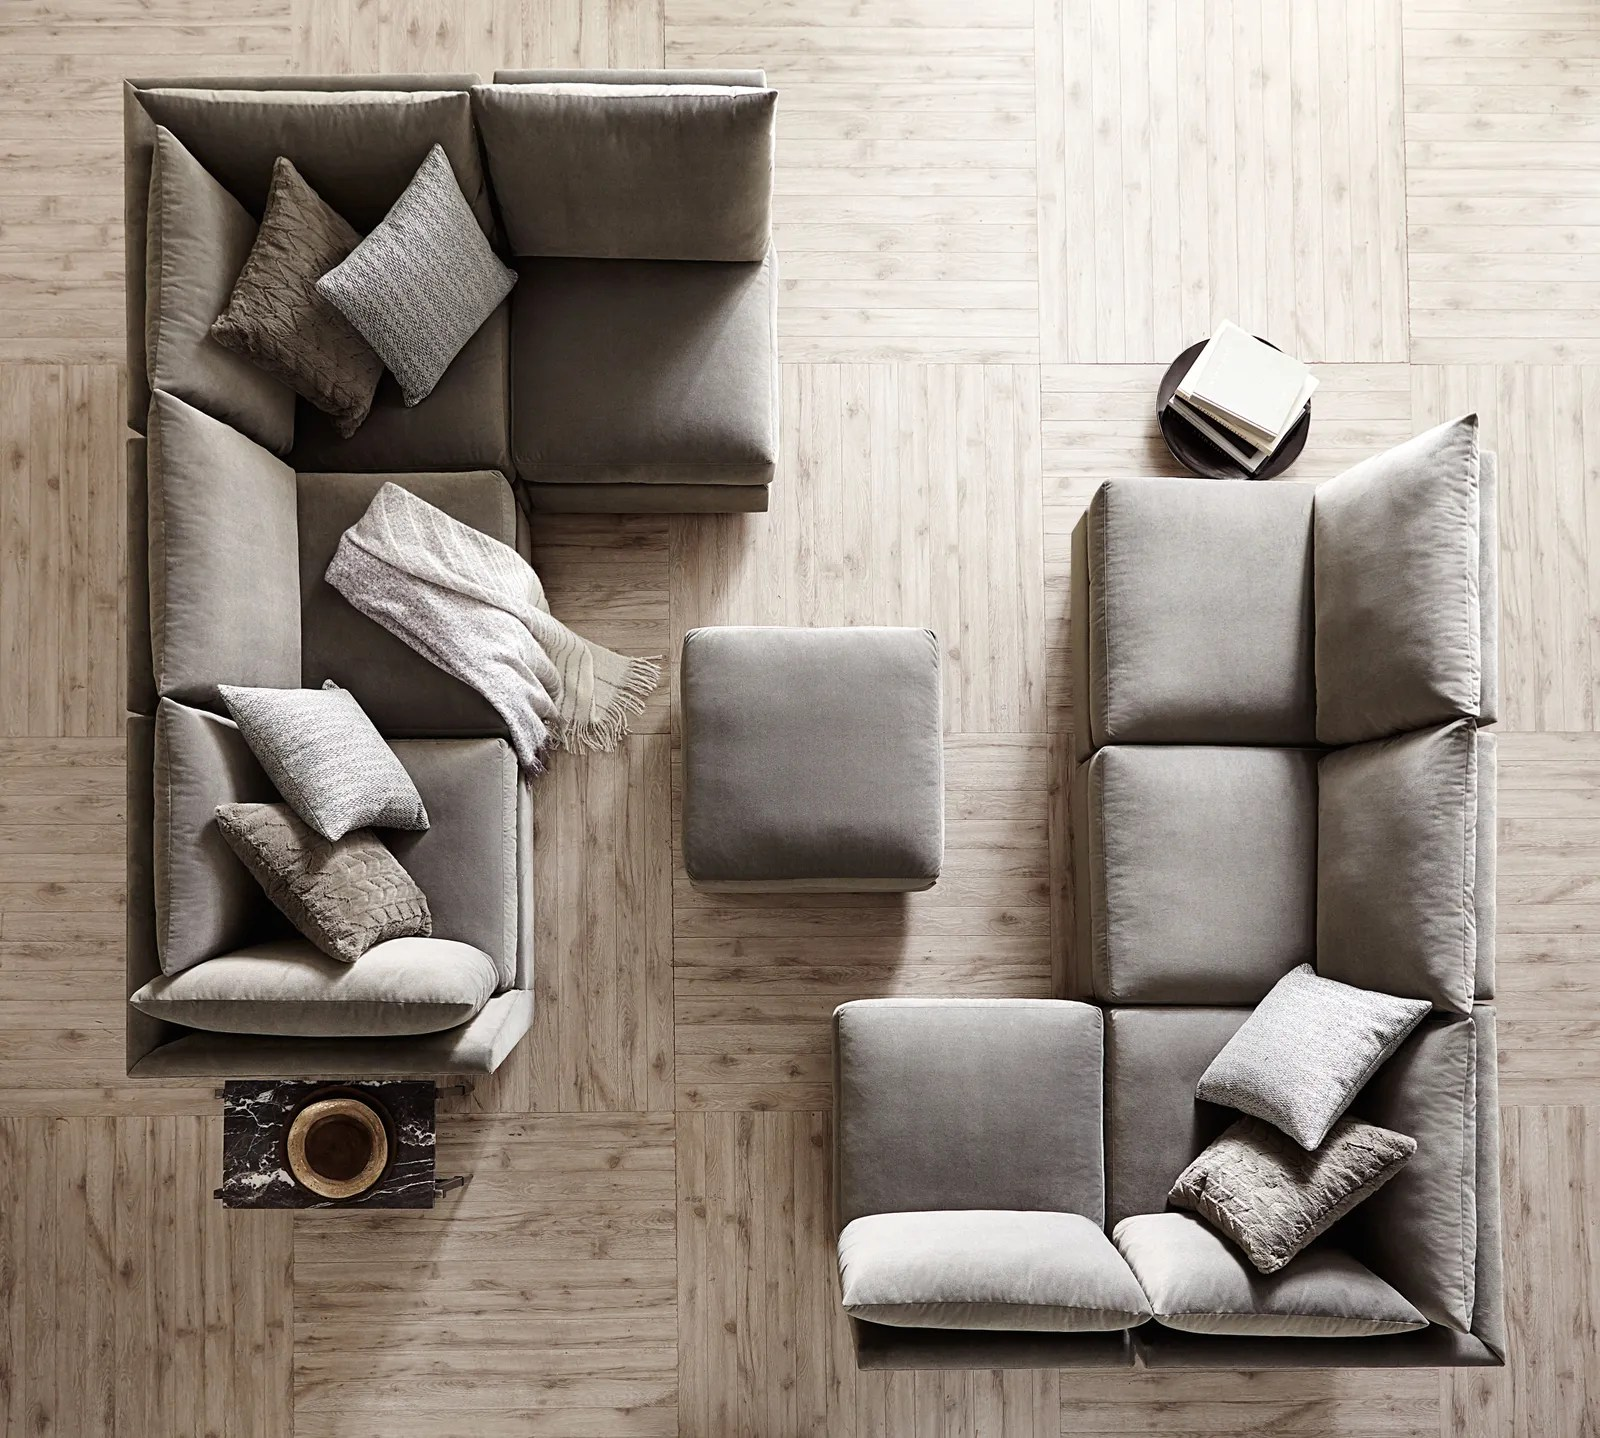 13 New Sectional Sofas That Provide Bespoke Perks At A Fraction Of The Cost Architectural Digest